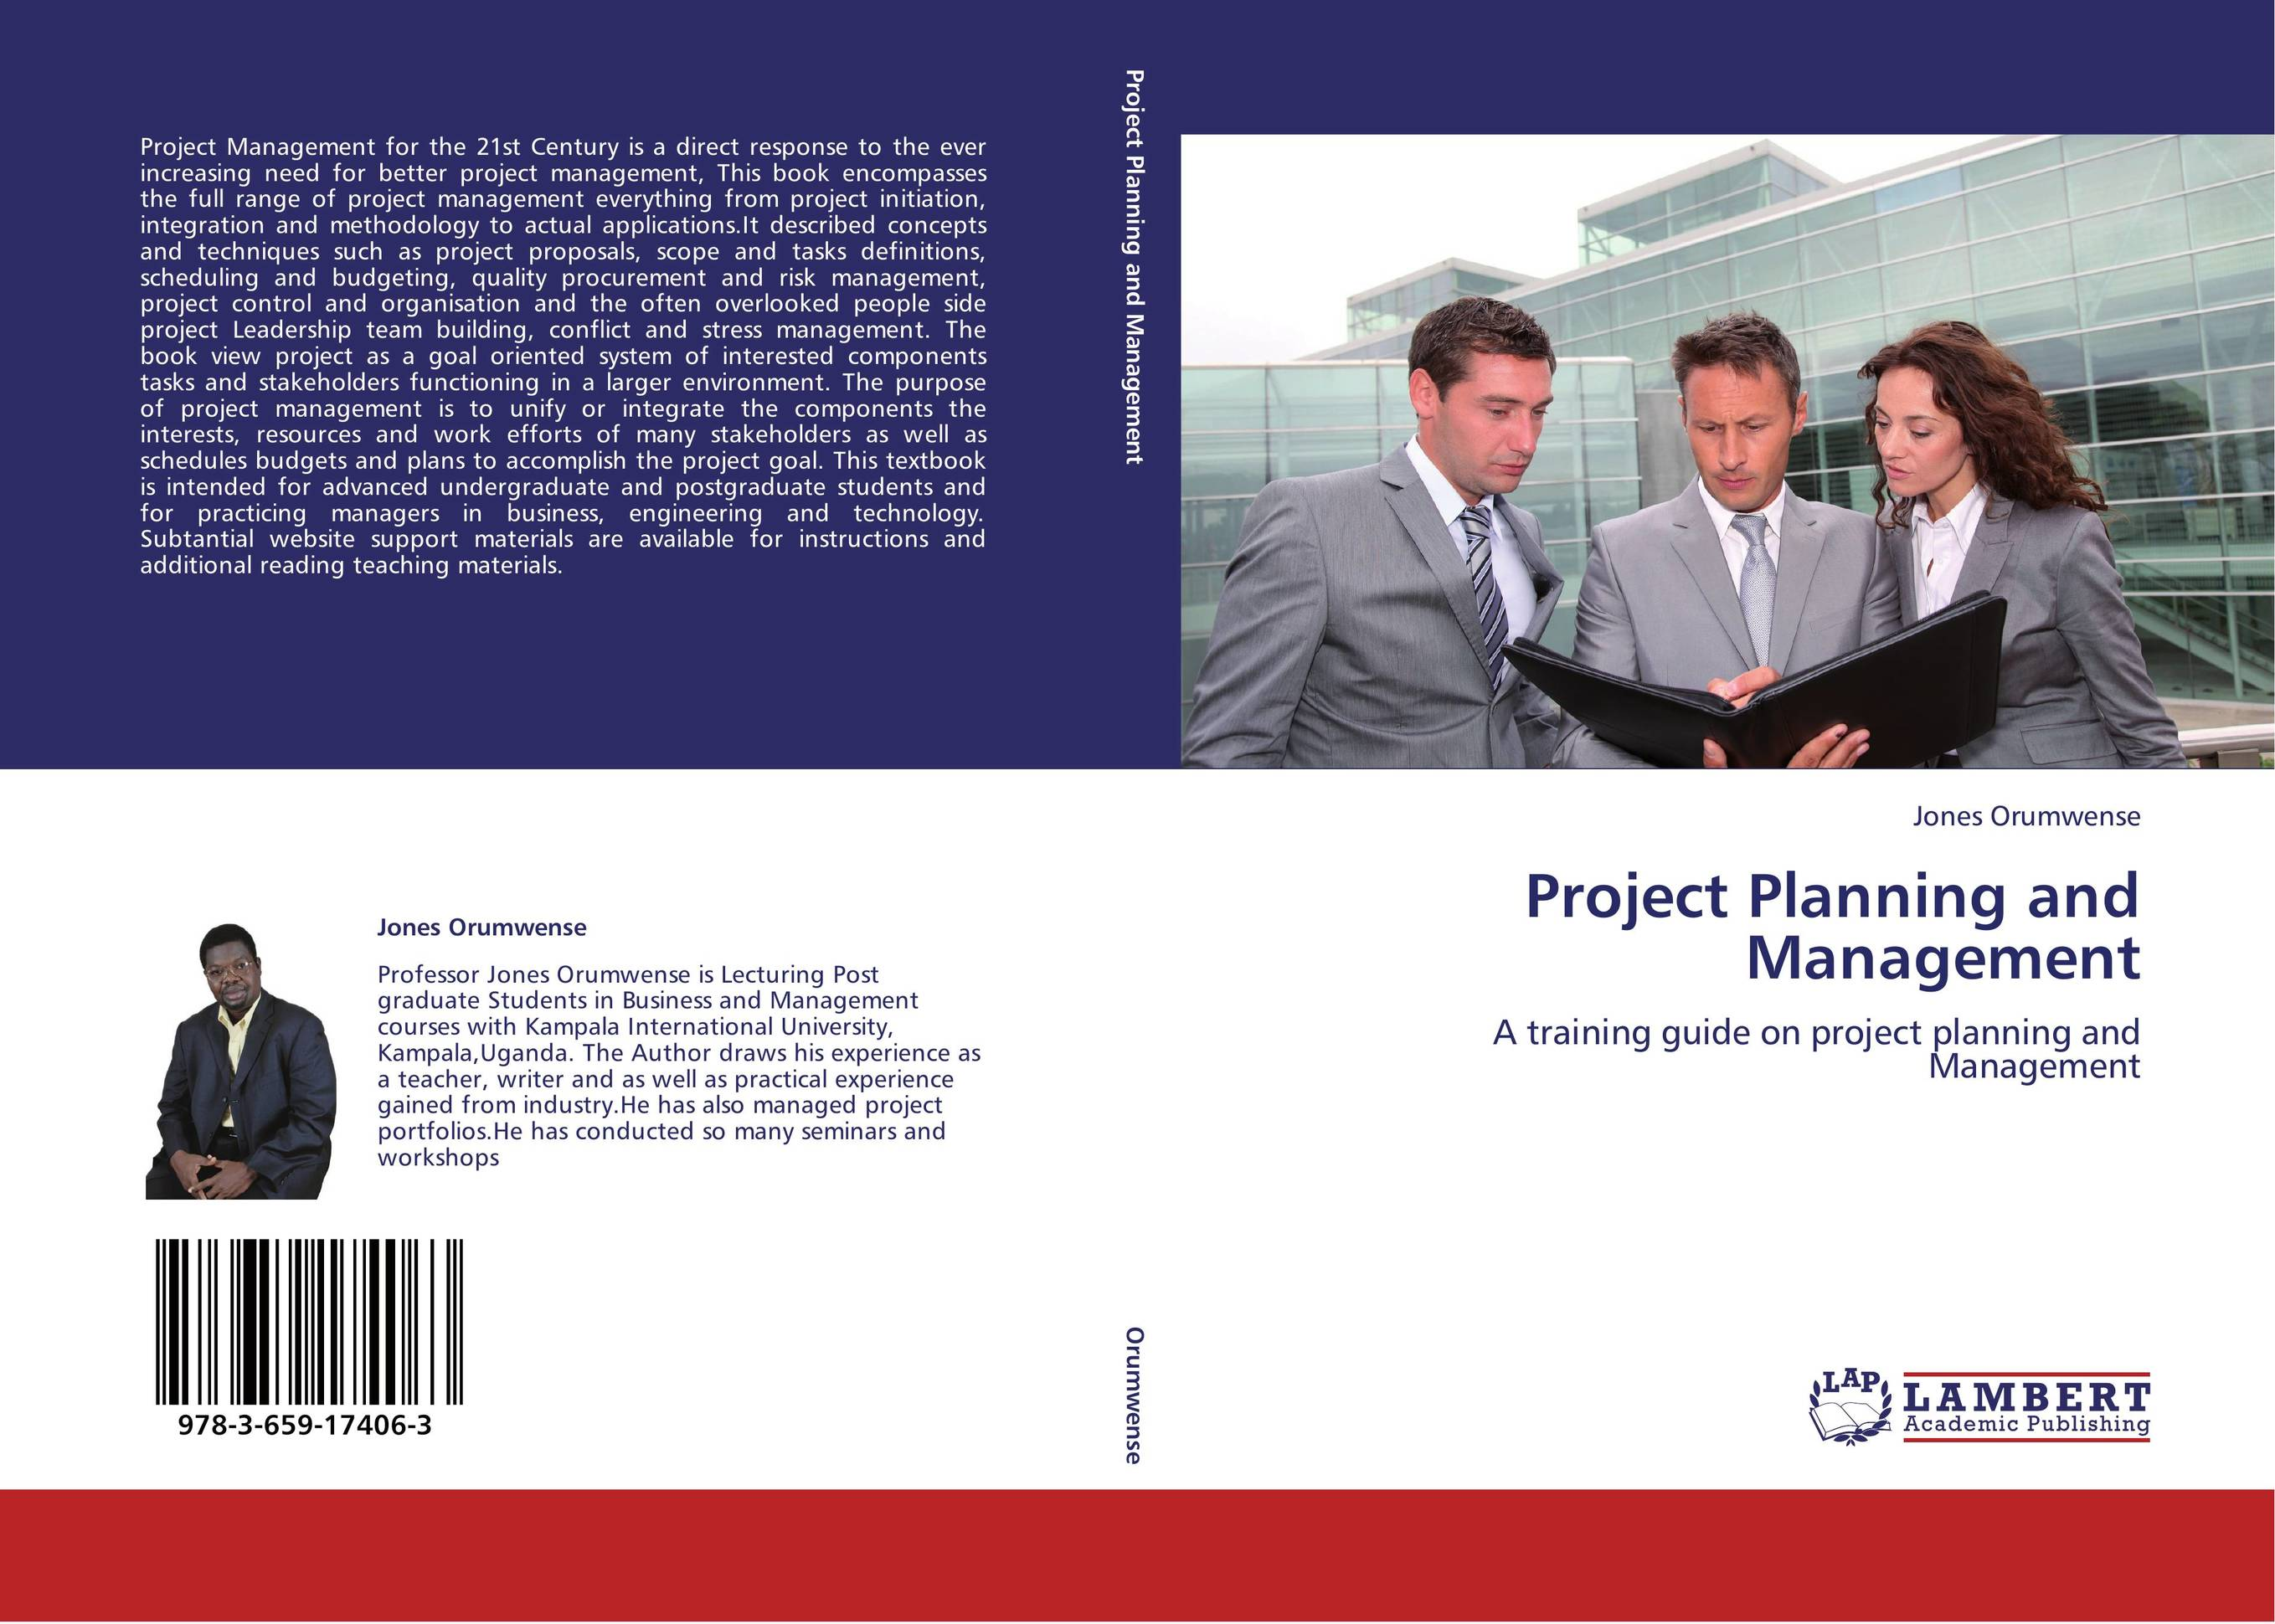 essay on project planning and management Project management and project essays can have biggest impact on a project is making unrealistic time line, and it is one of the most common reasons for project failure and improper planning i have seen many projects not being successful due to timeline or reducing project scope in order to achieve the timeline.